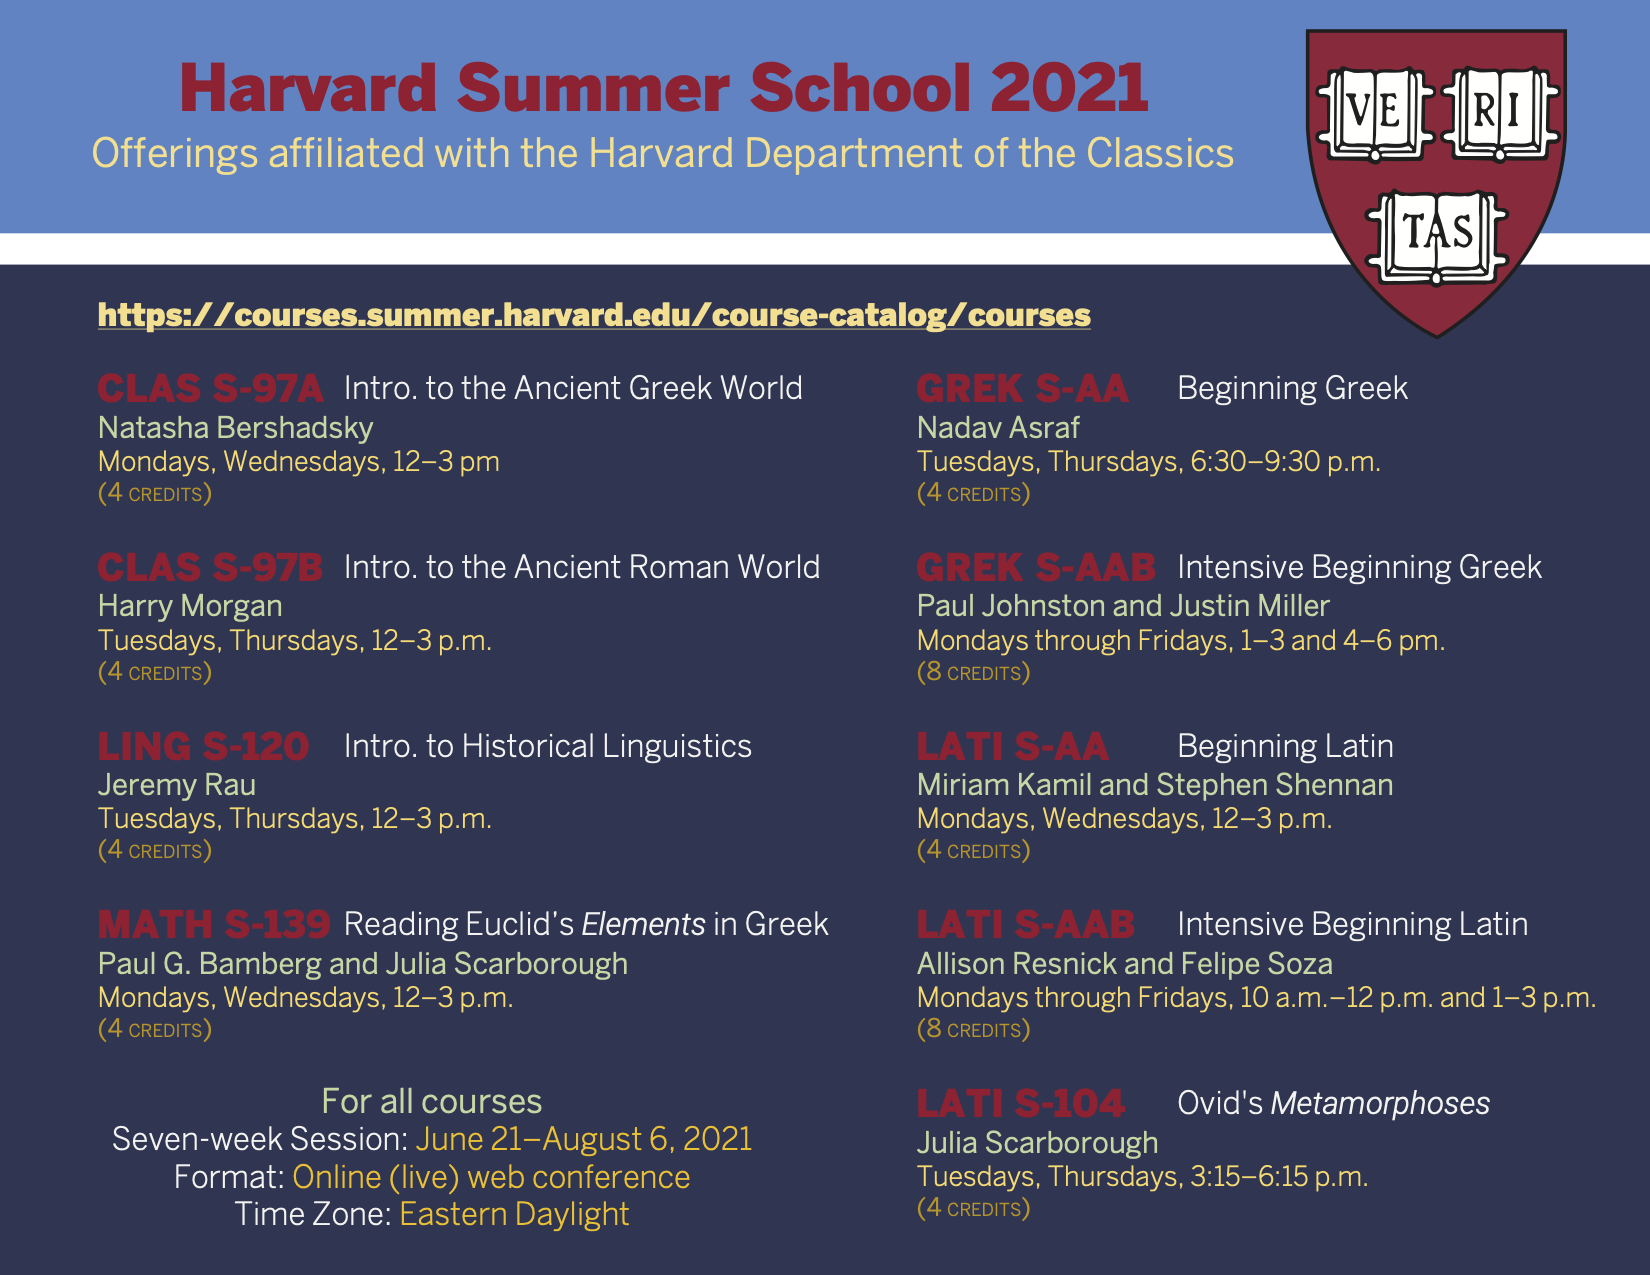 Harvard Summer School 2021 Classics courses